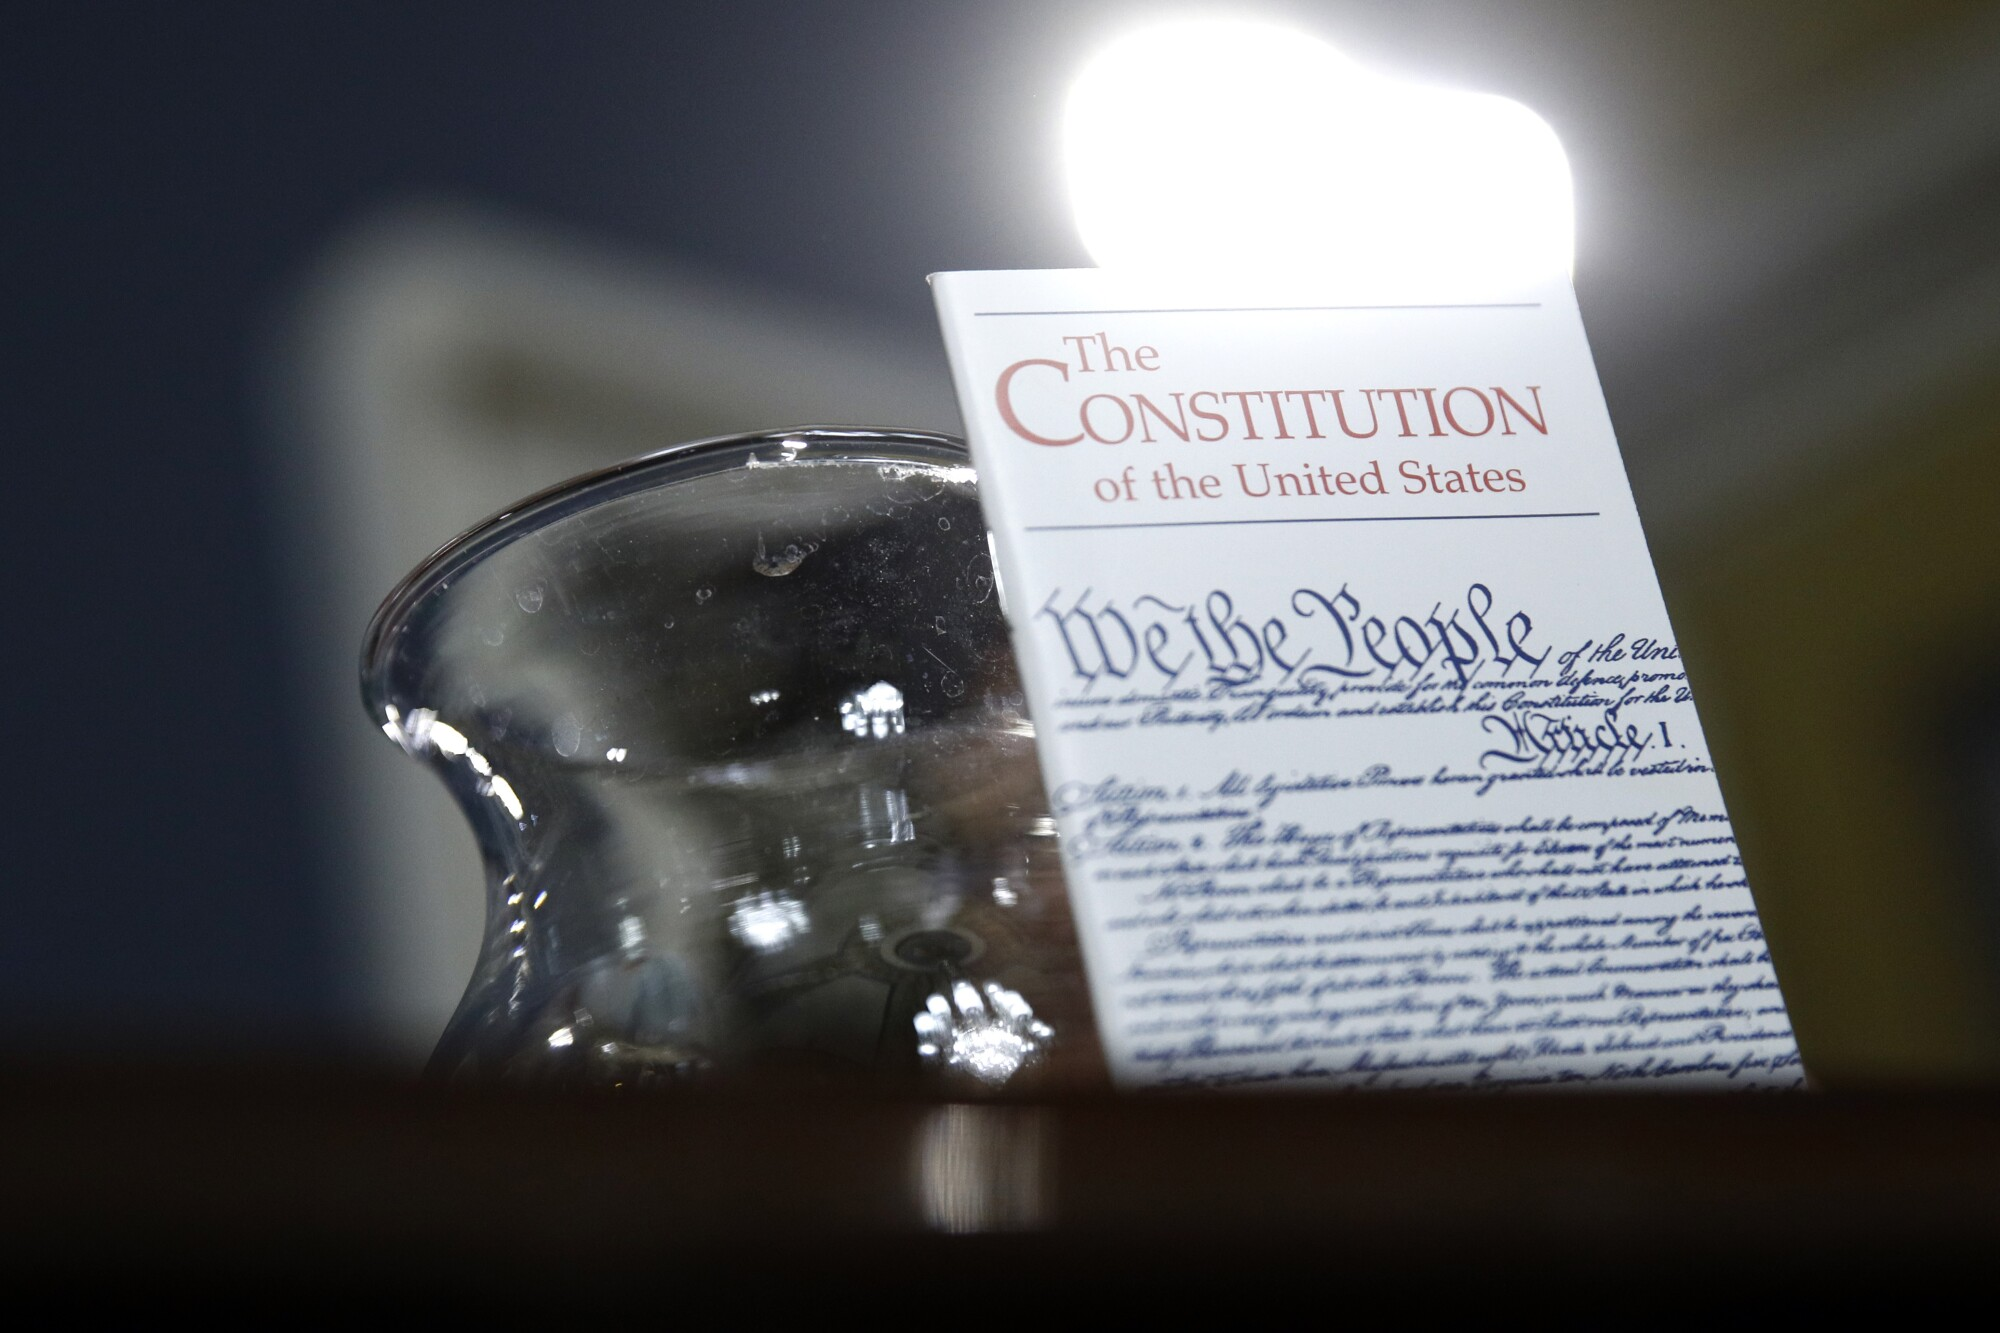 A copy of the Constitution